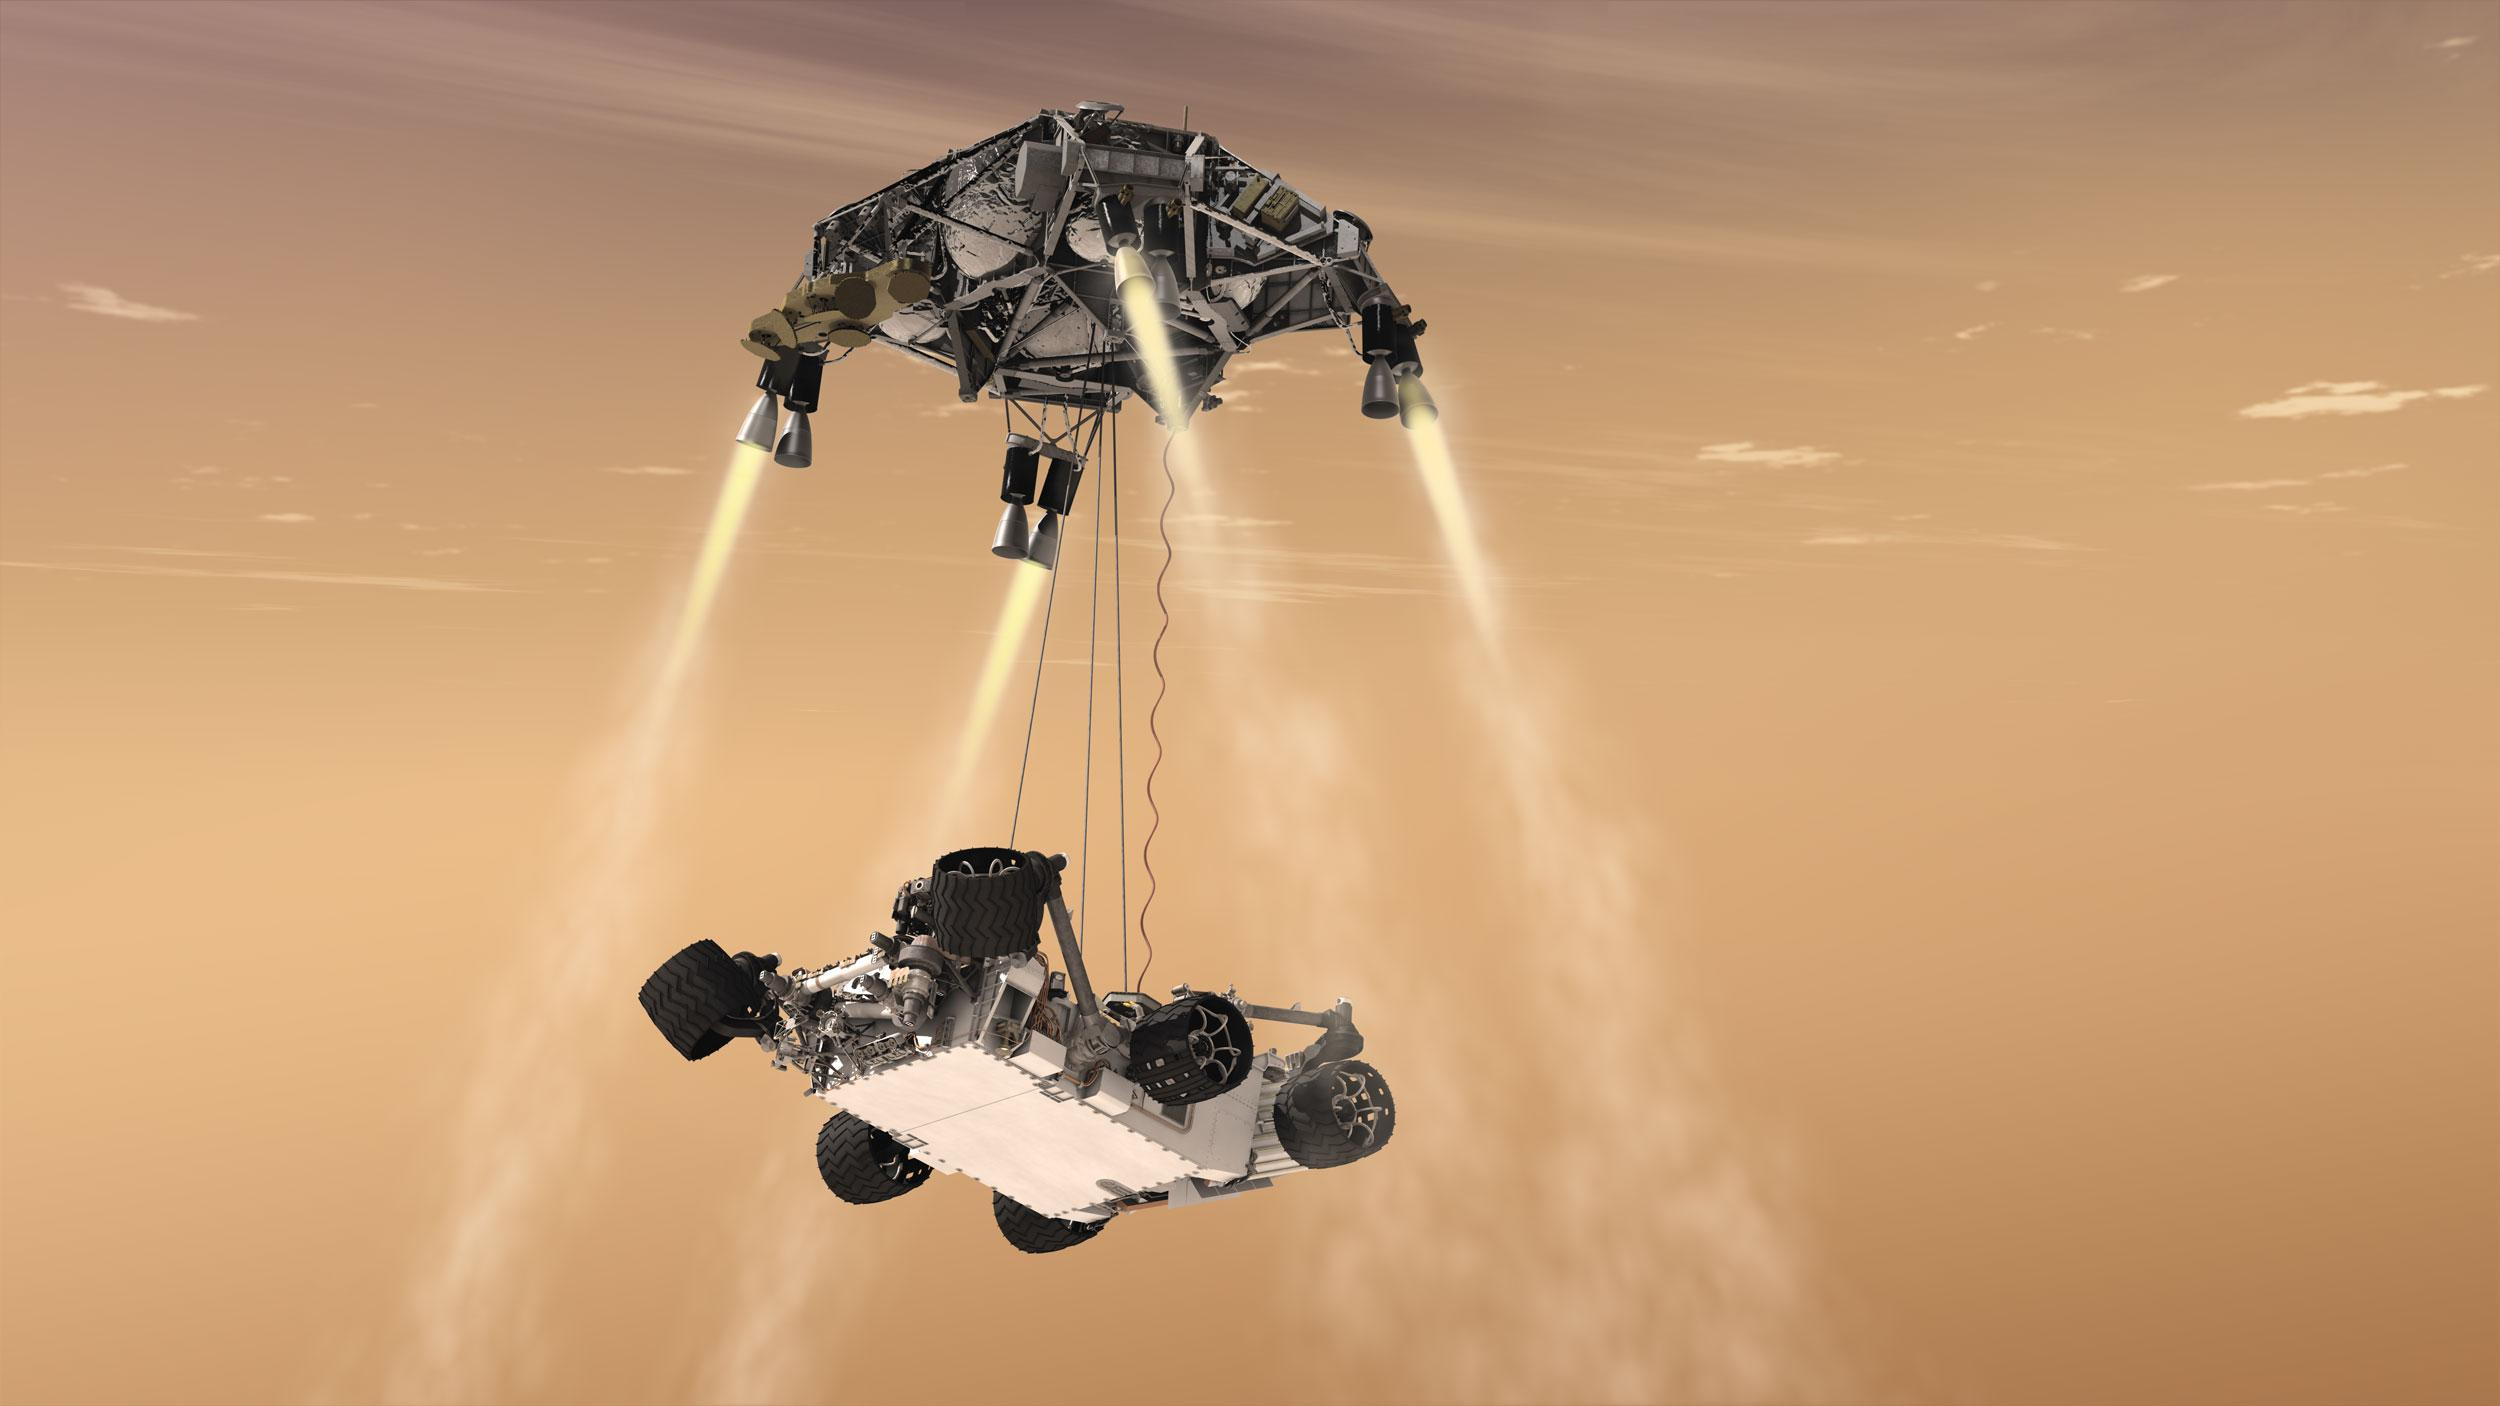 mission to mars concept art - photo #2